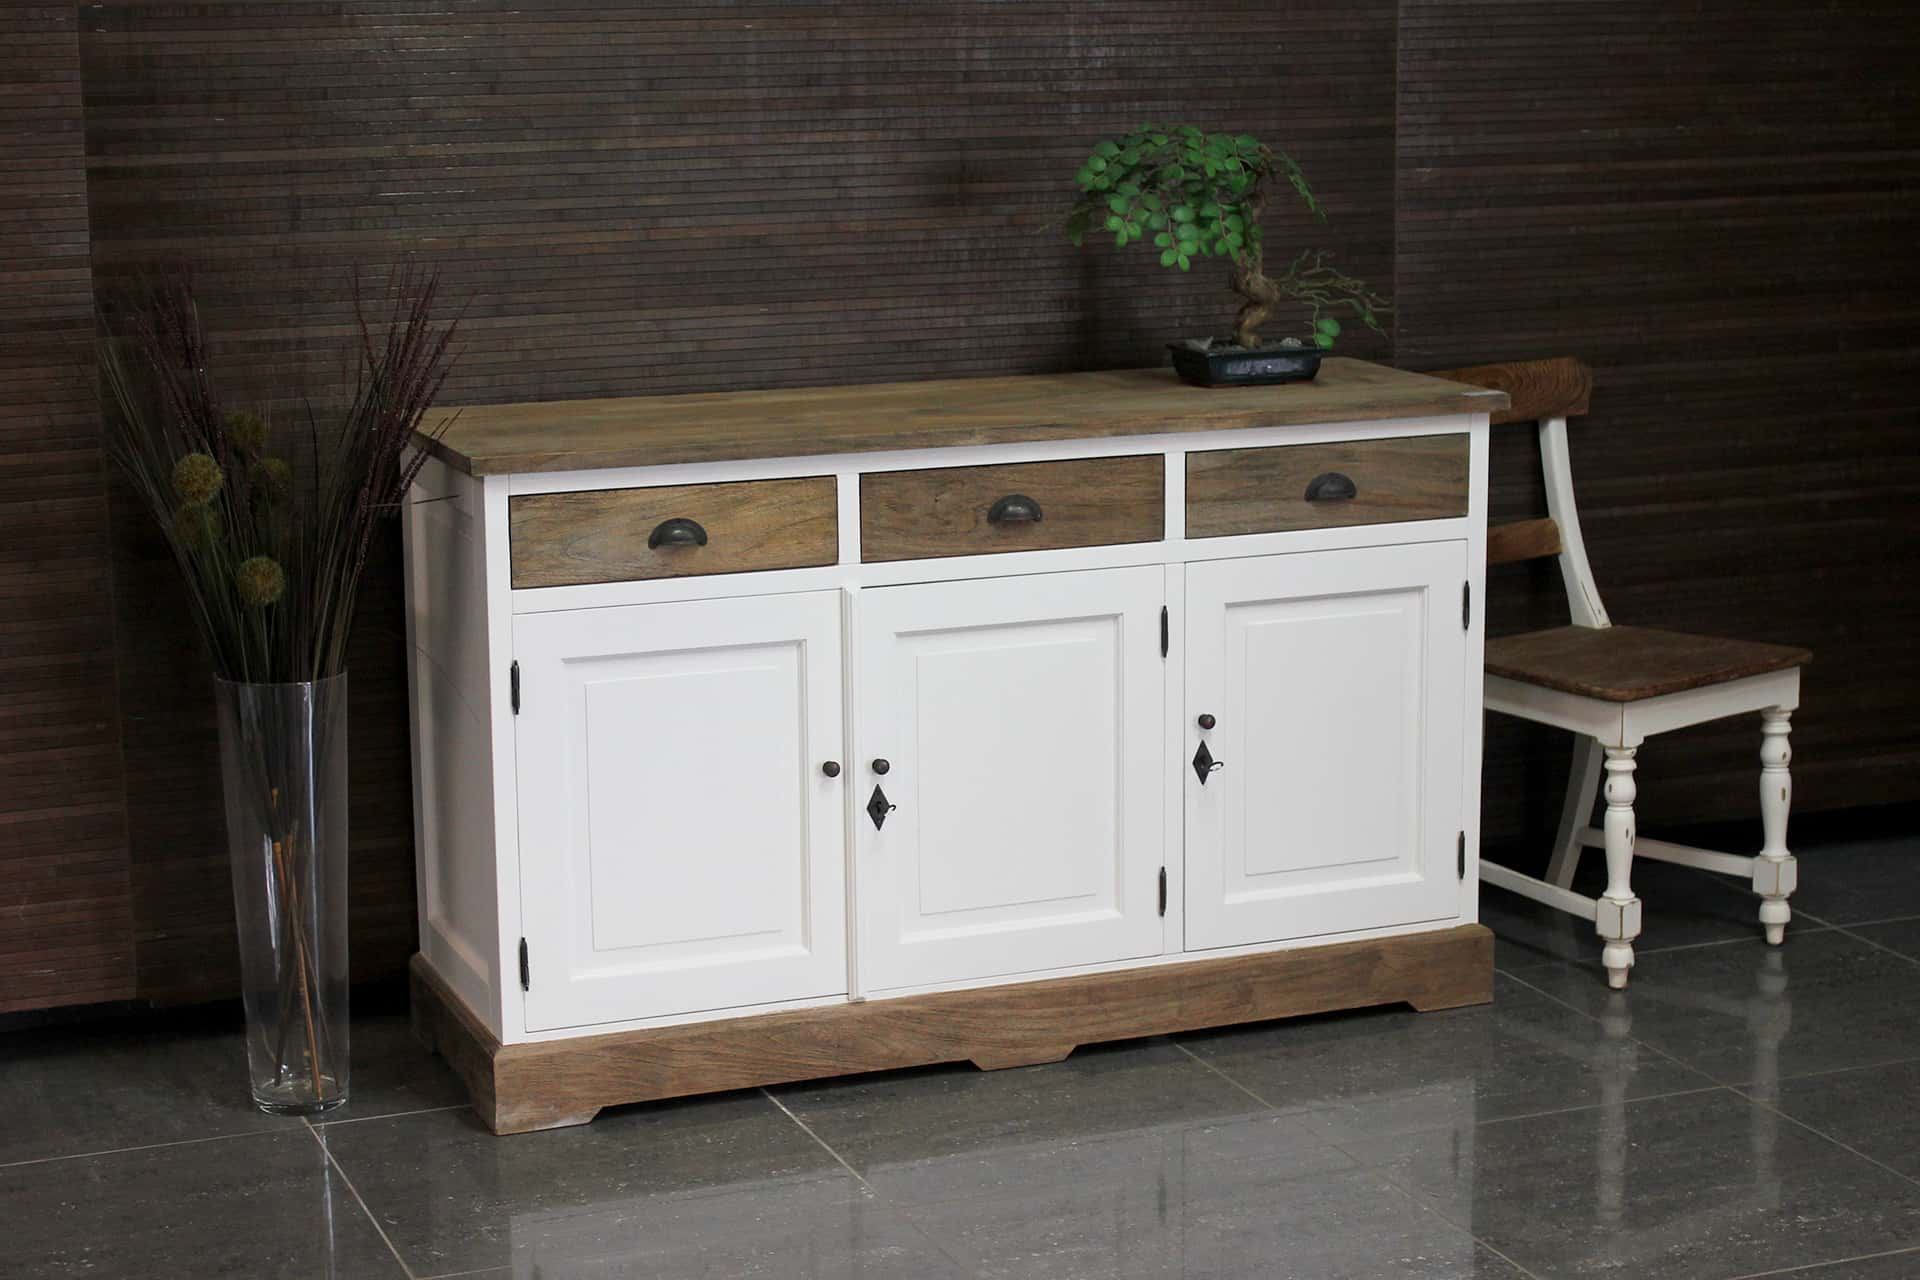 Asli D150L SW Teak | rural white sideboard with teak, revolving doors and drawers. White sideboard with country look & traditional features - TEAK2.